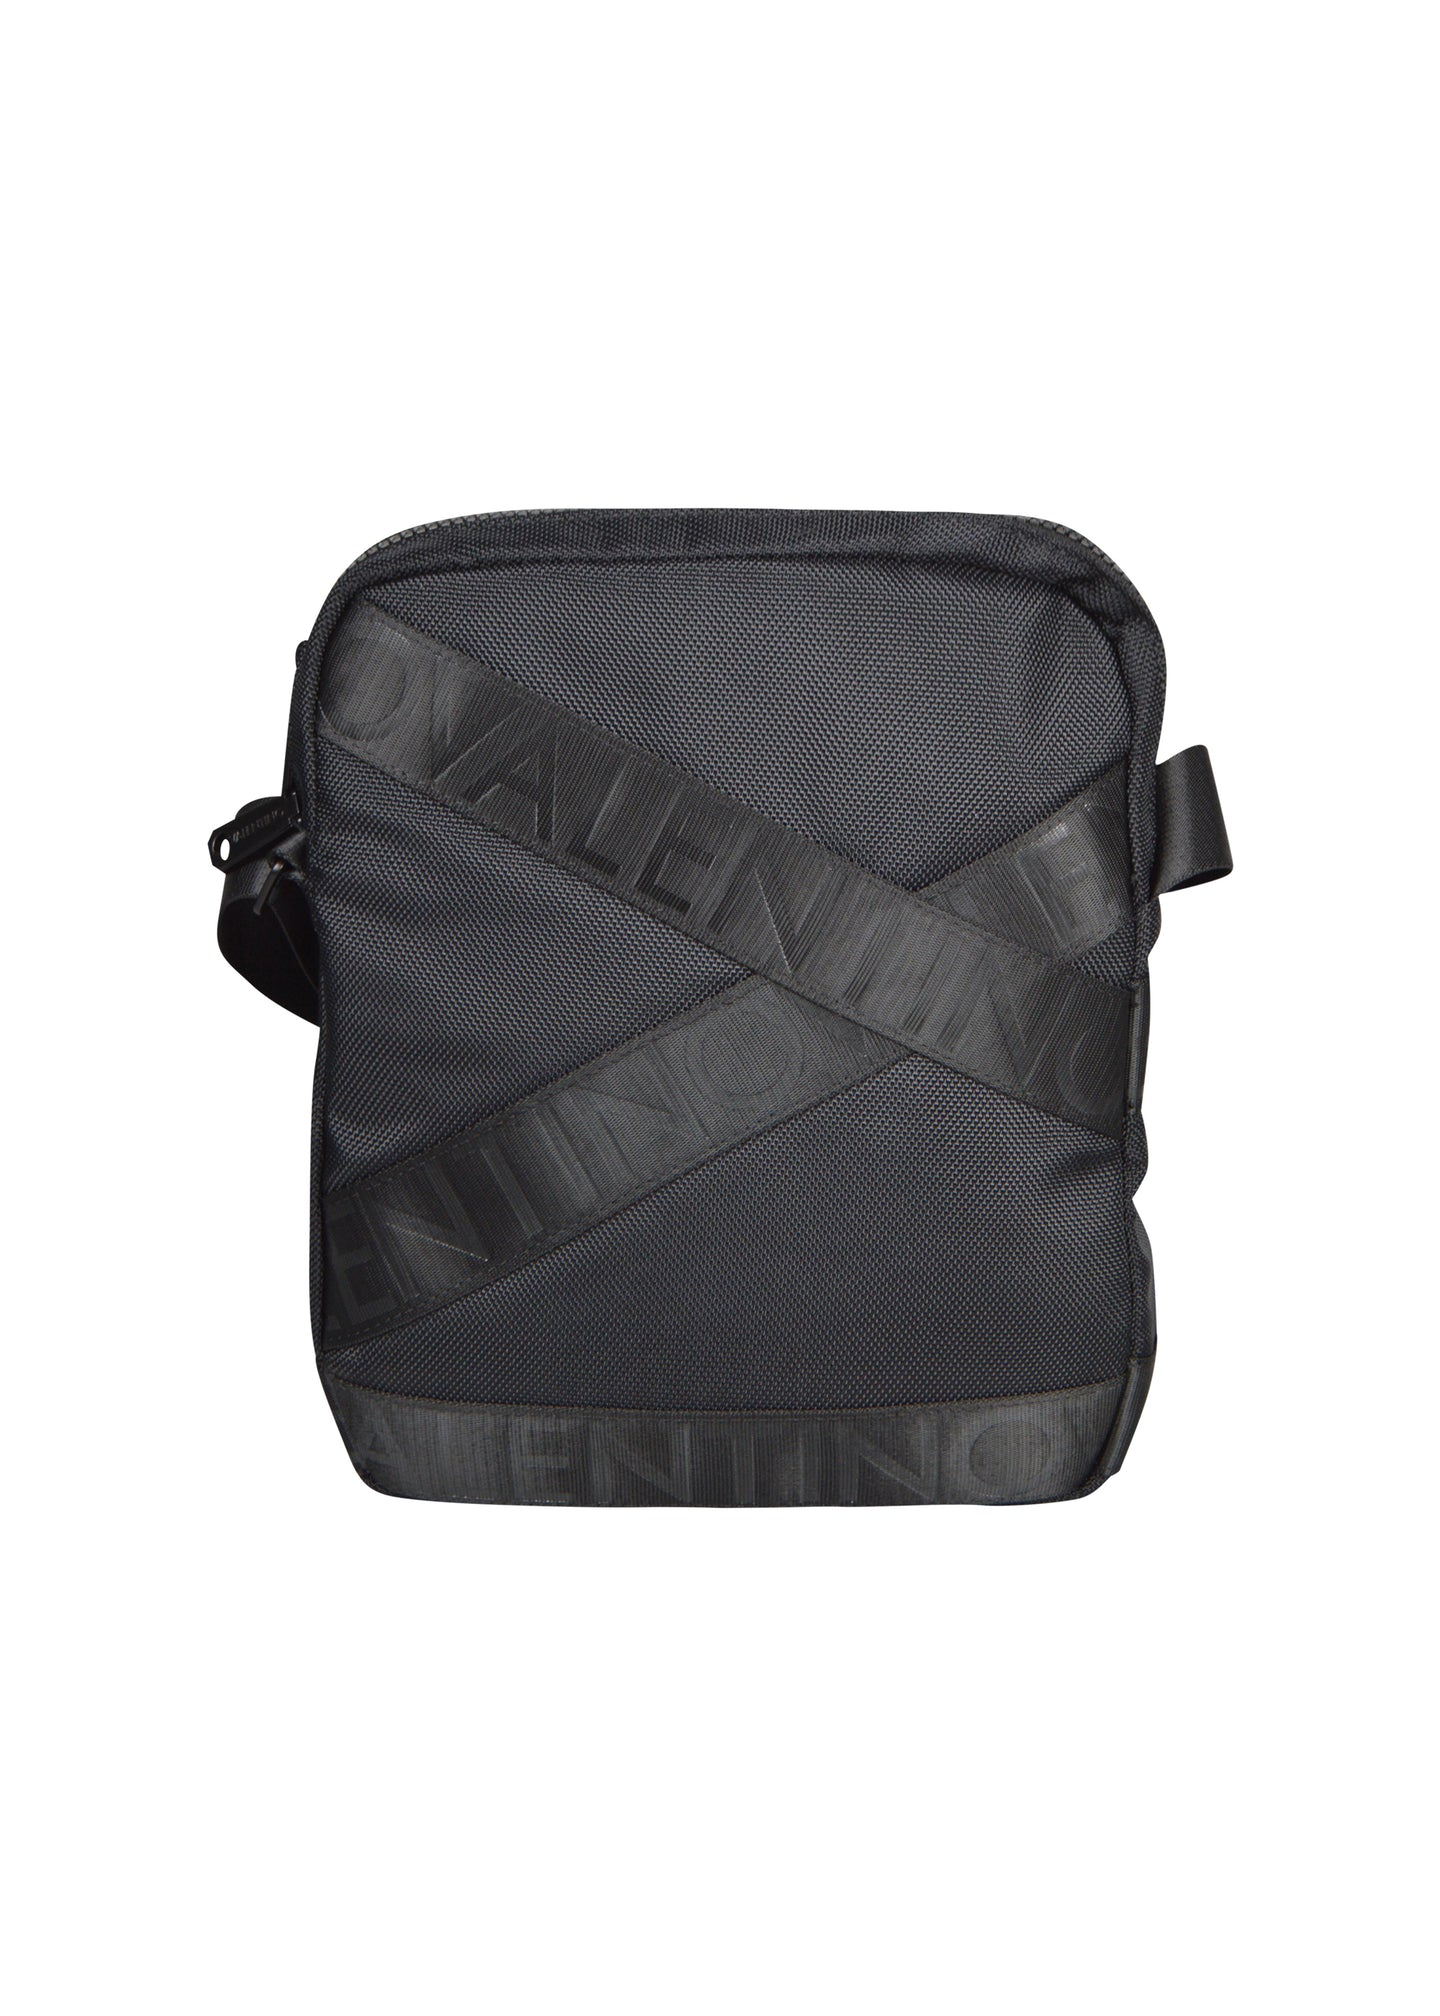 Valentino - Large Cross Body Bag Tape Story - Black